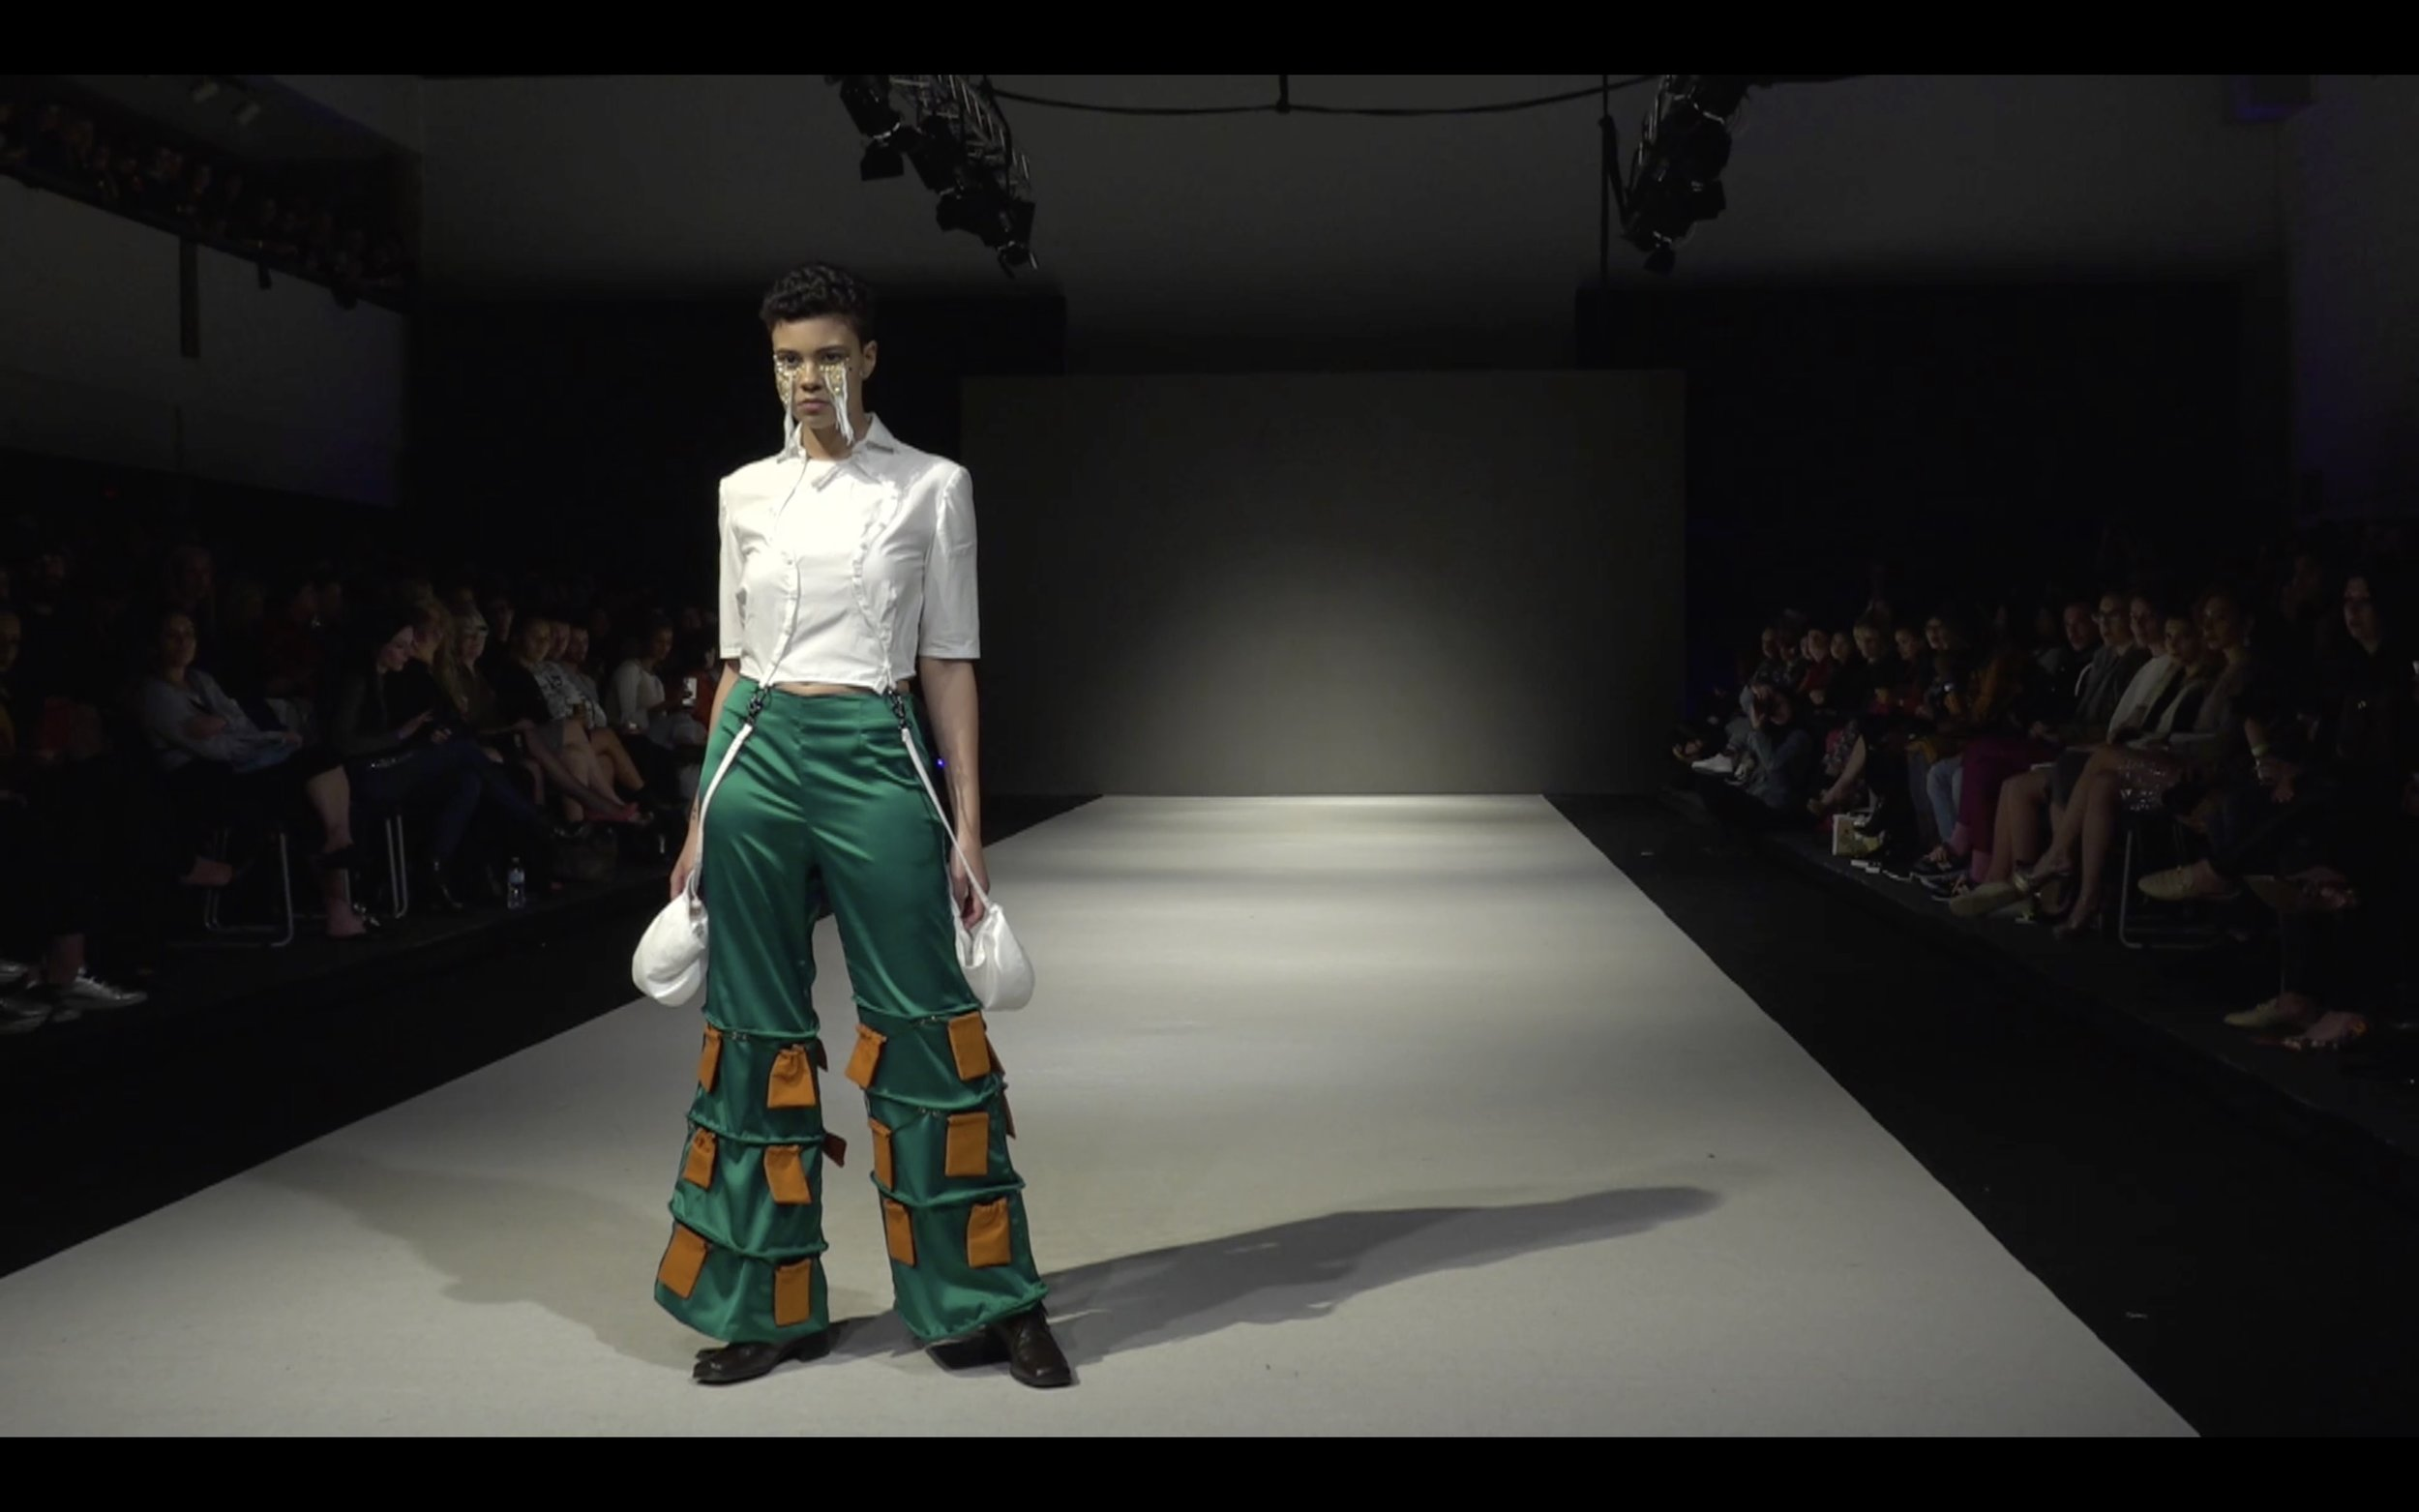 Vancouver Fashion Week 2018 - Hannah Eriksson - Runway Music (2018)Composer